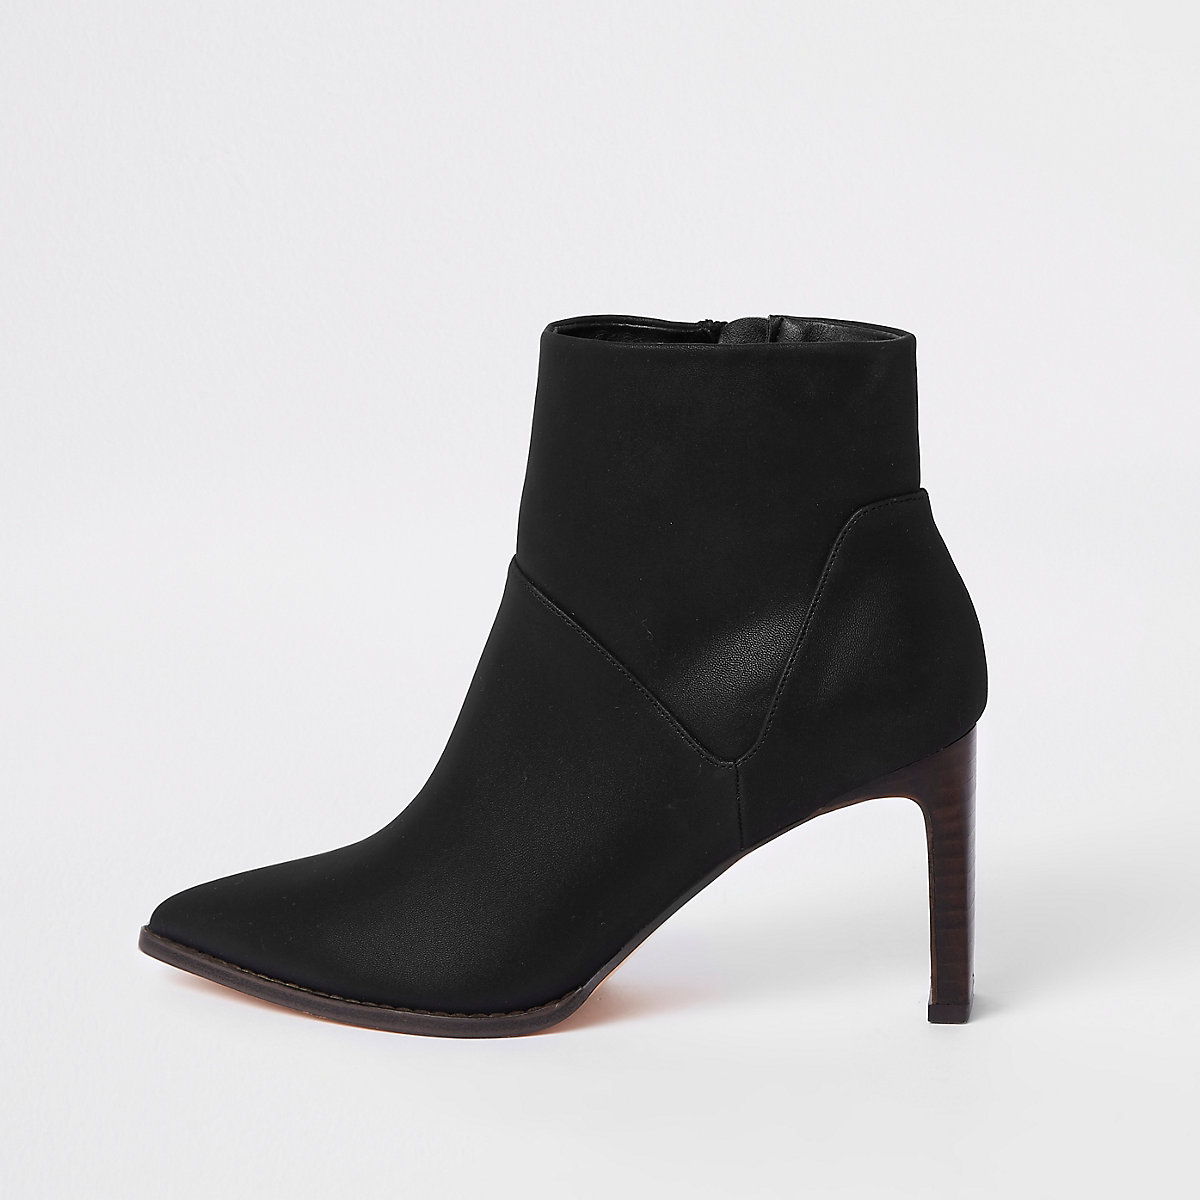 Black pointed slim square heel boots